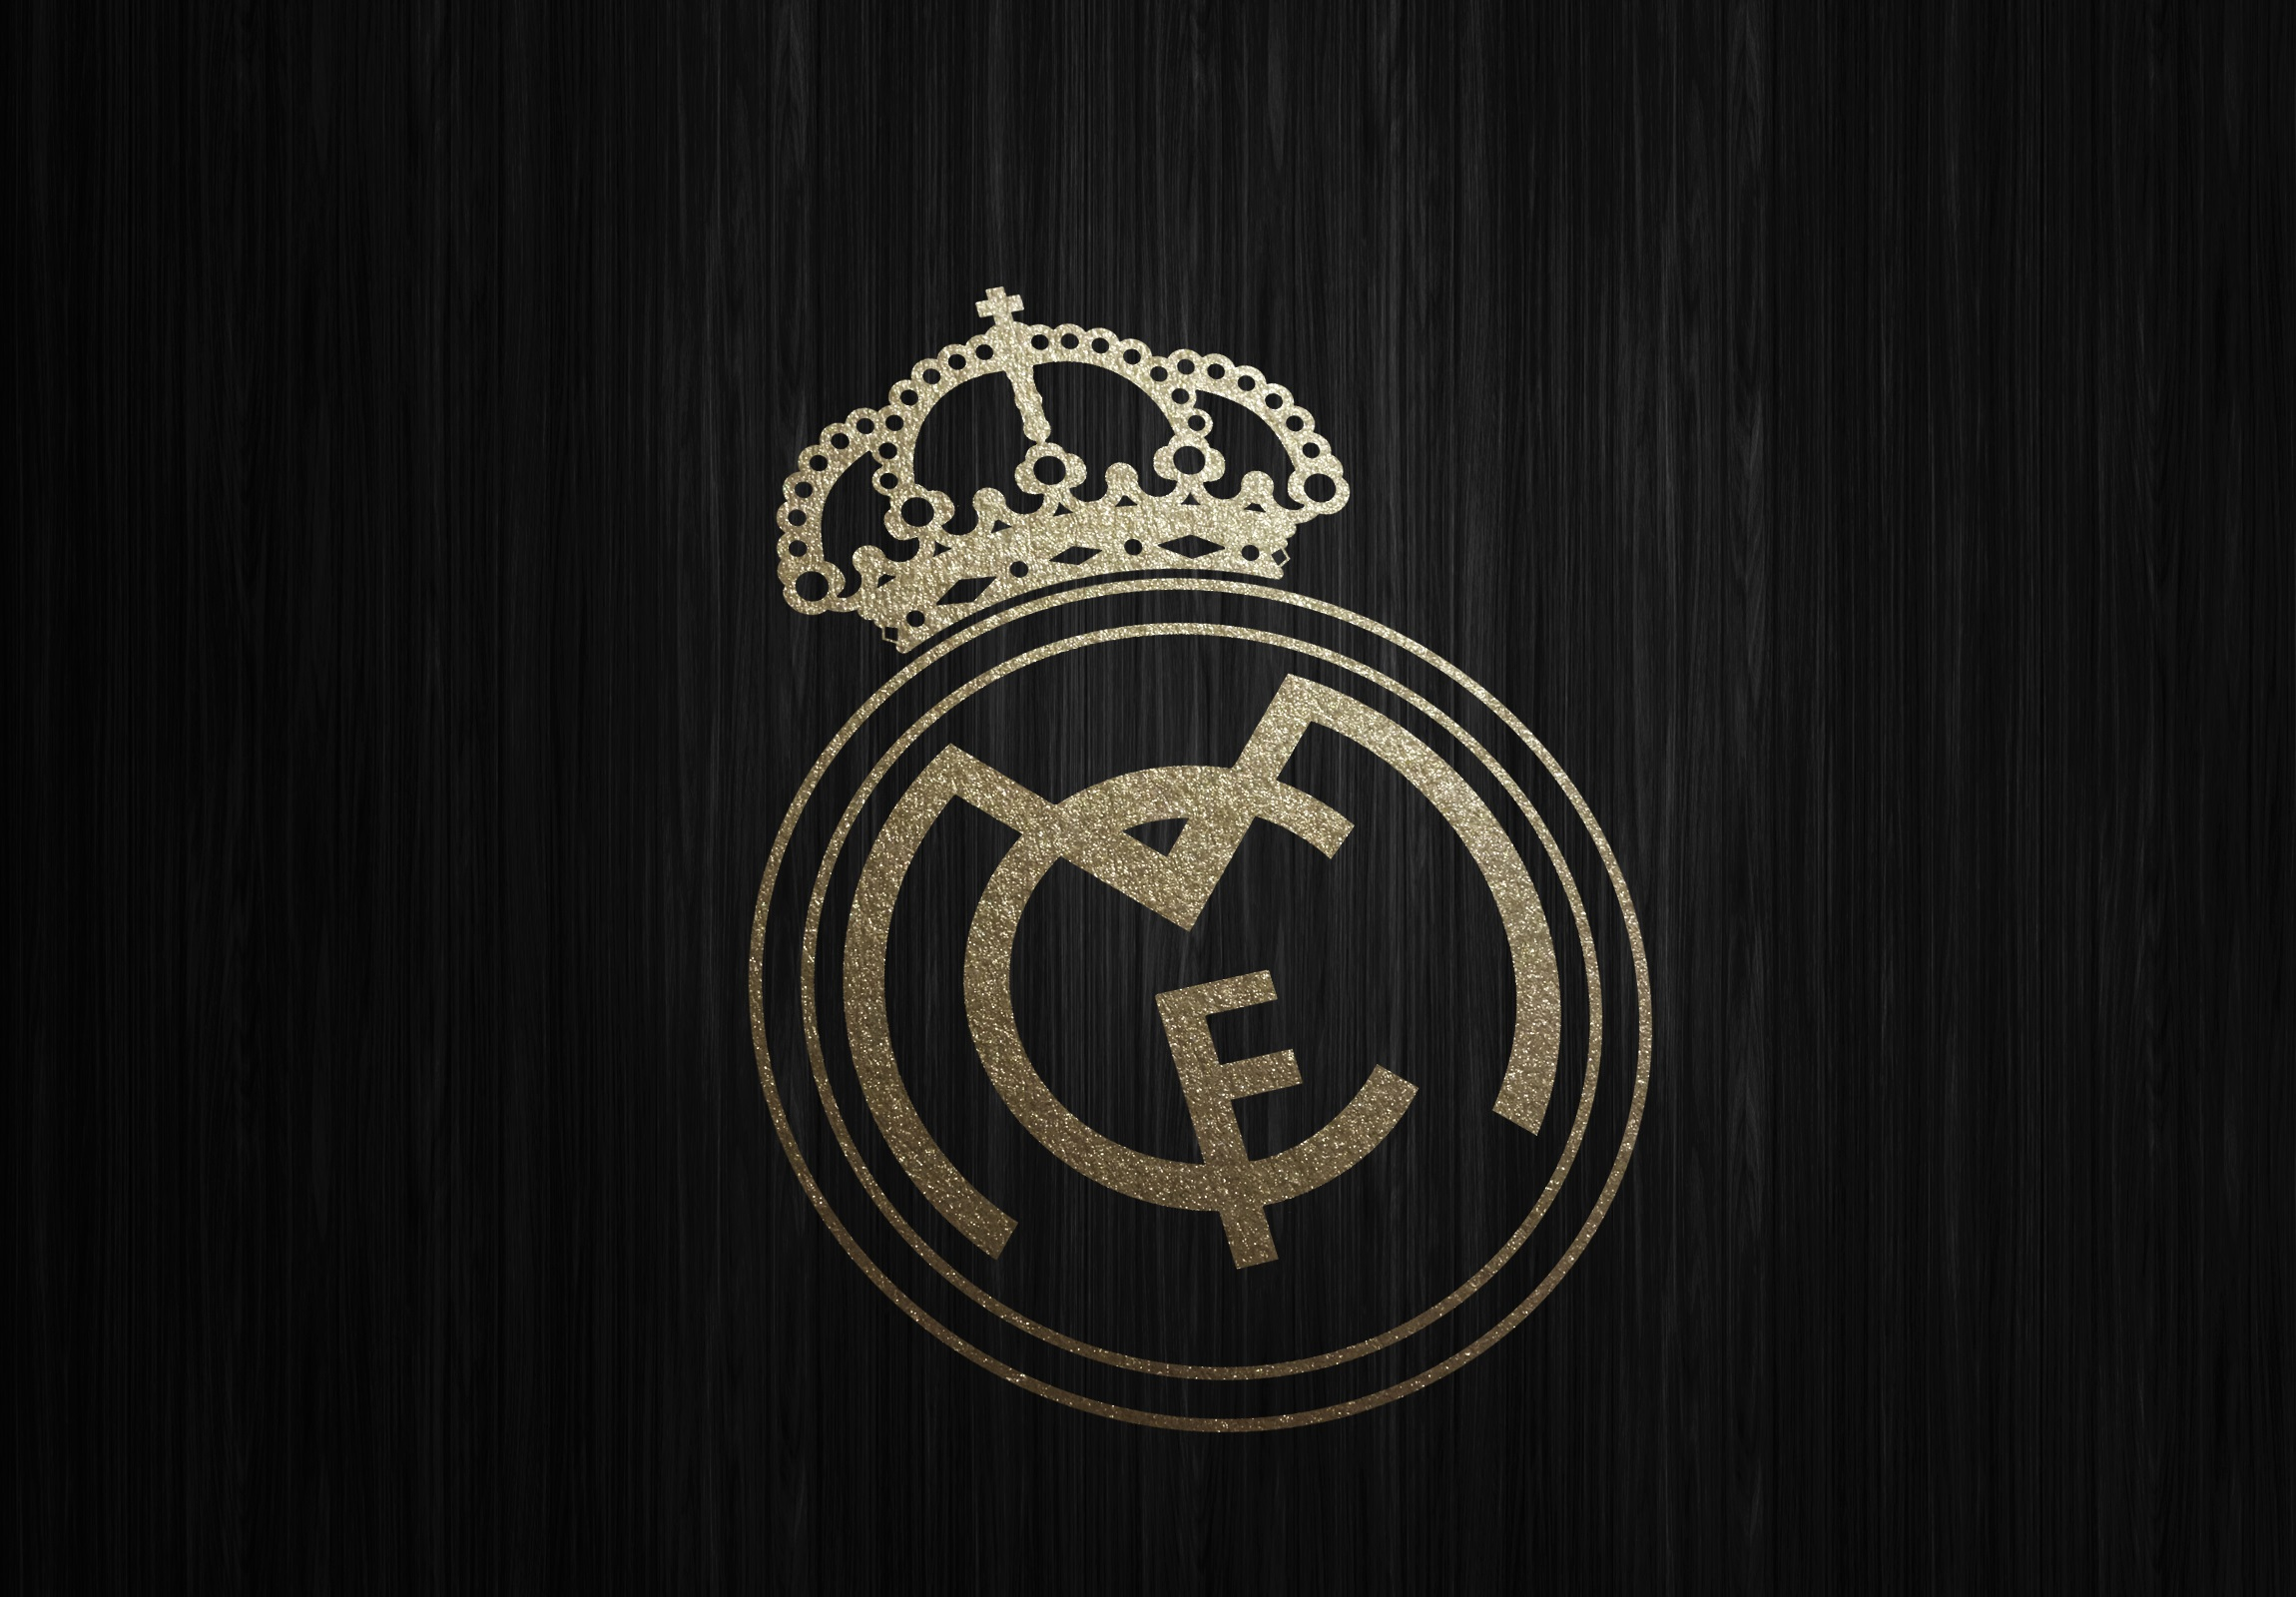 Real Madrid High Quality Wallpapers